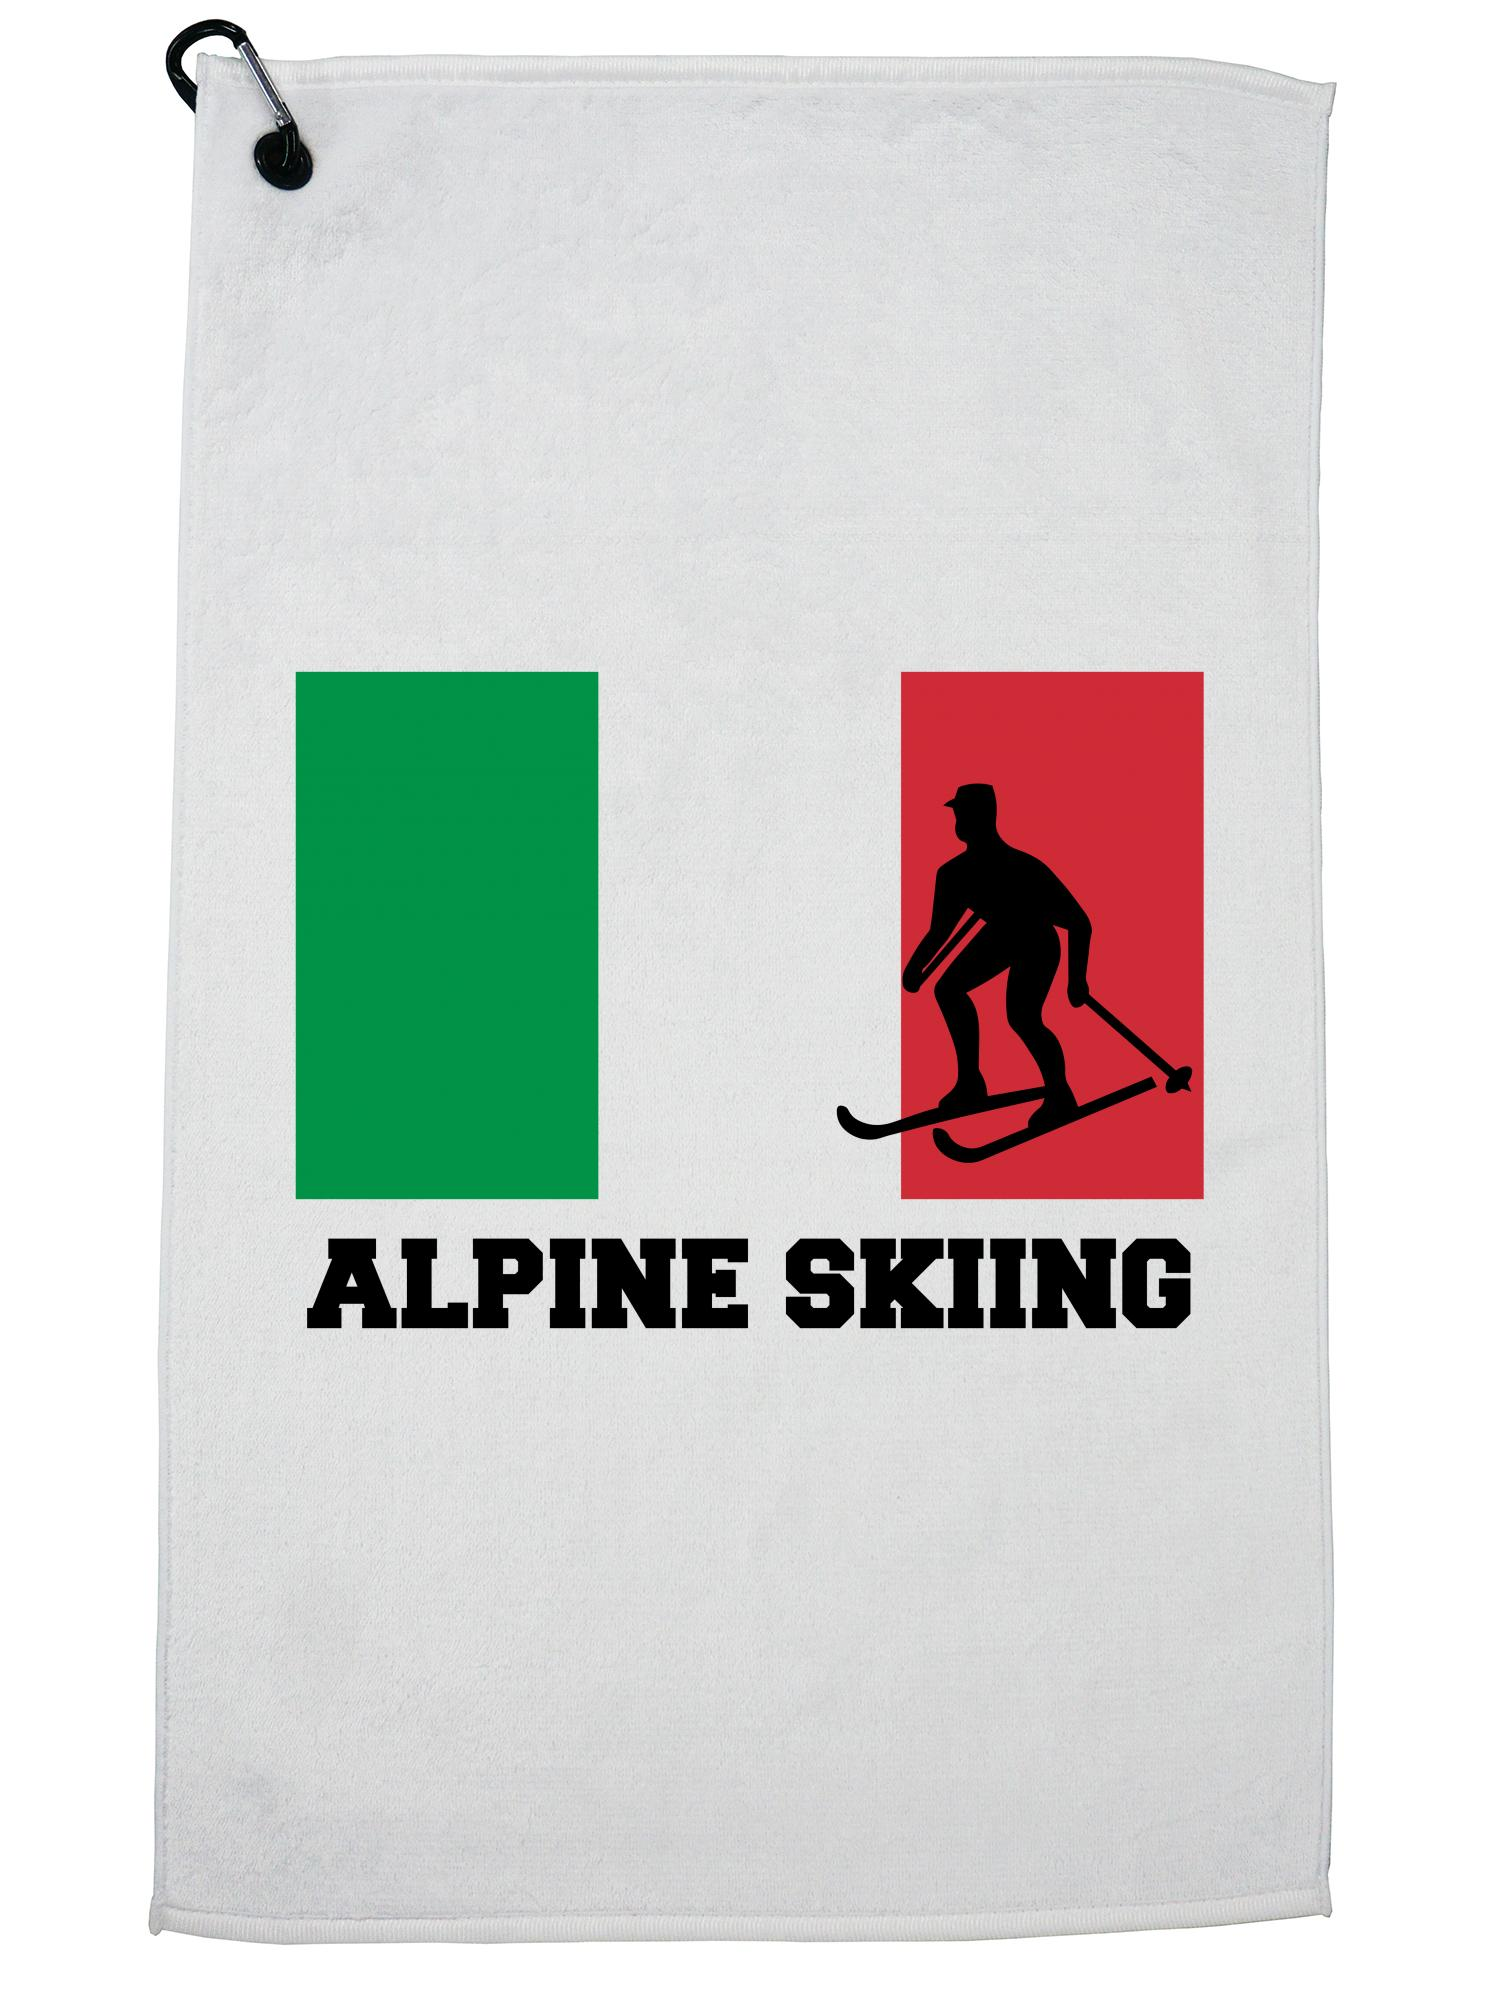 Italy Olympic Alpine Skiing Flag Silhouette Golf Towel with Carabiner Clip by Hollywood Thread